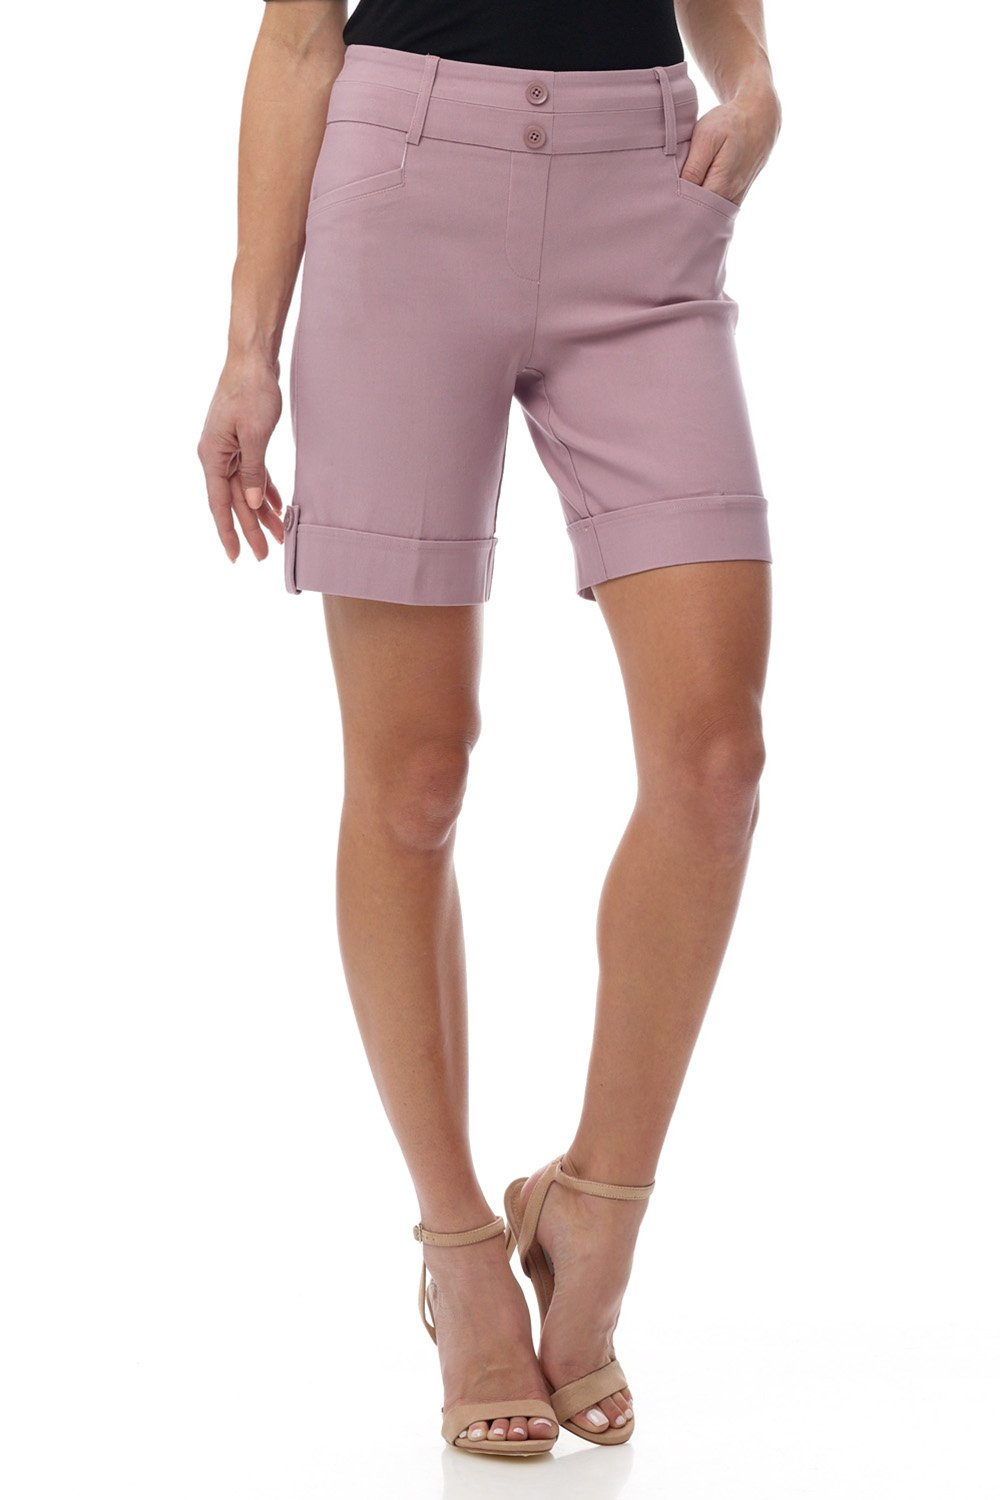 Rekucci Women's Ease in to Comfort Fit 8'' Chic Urban Short (12,Lavender Mist)